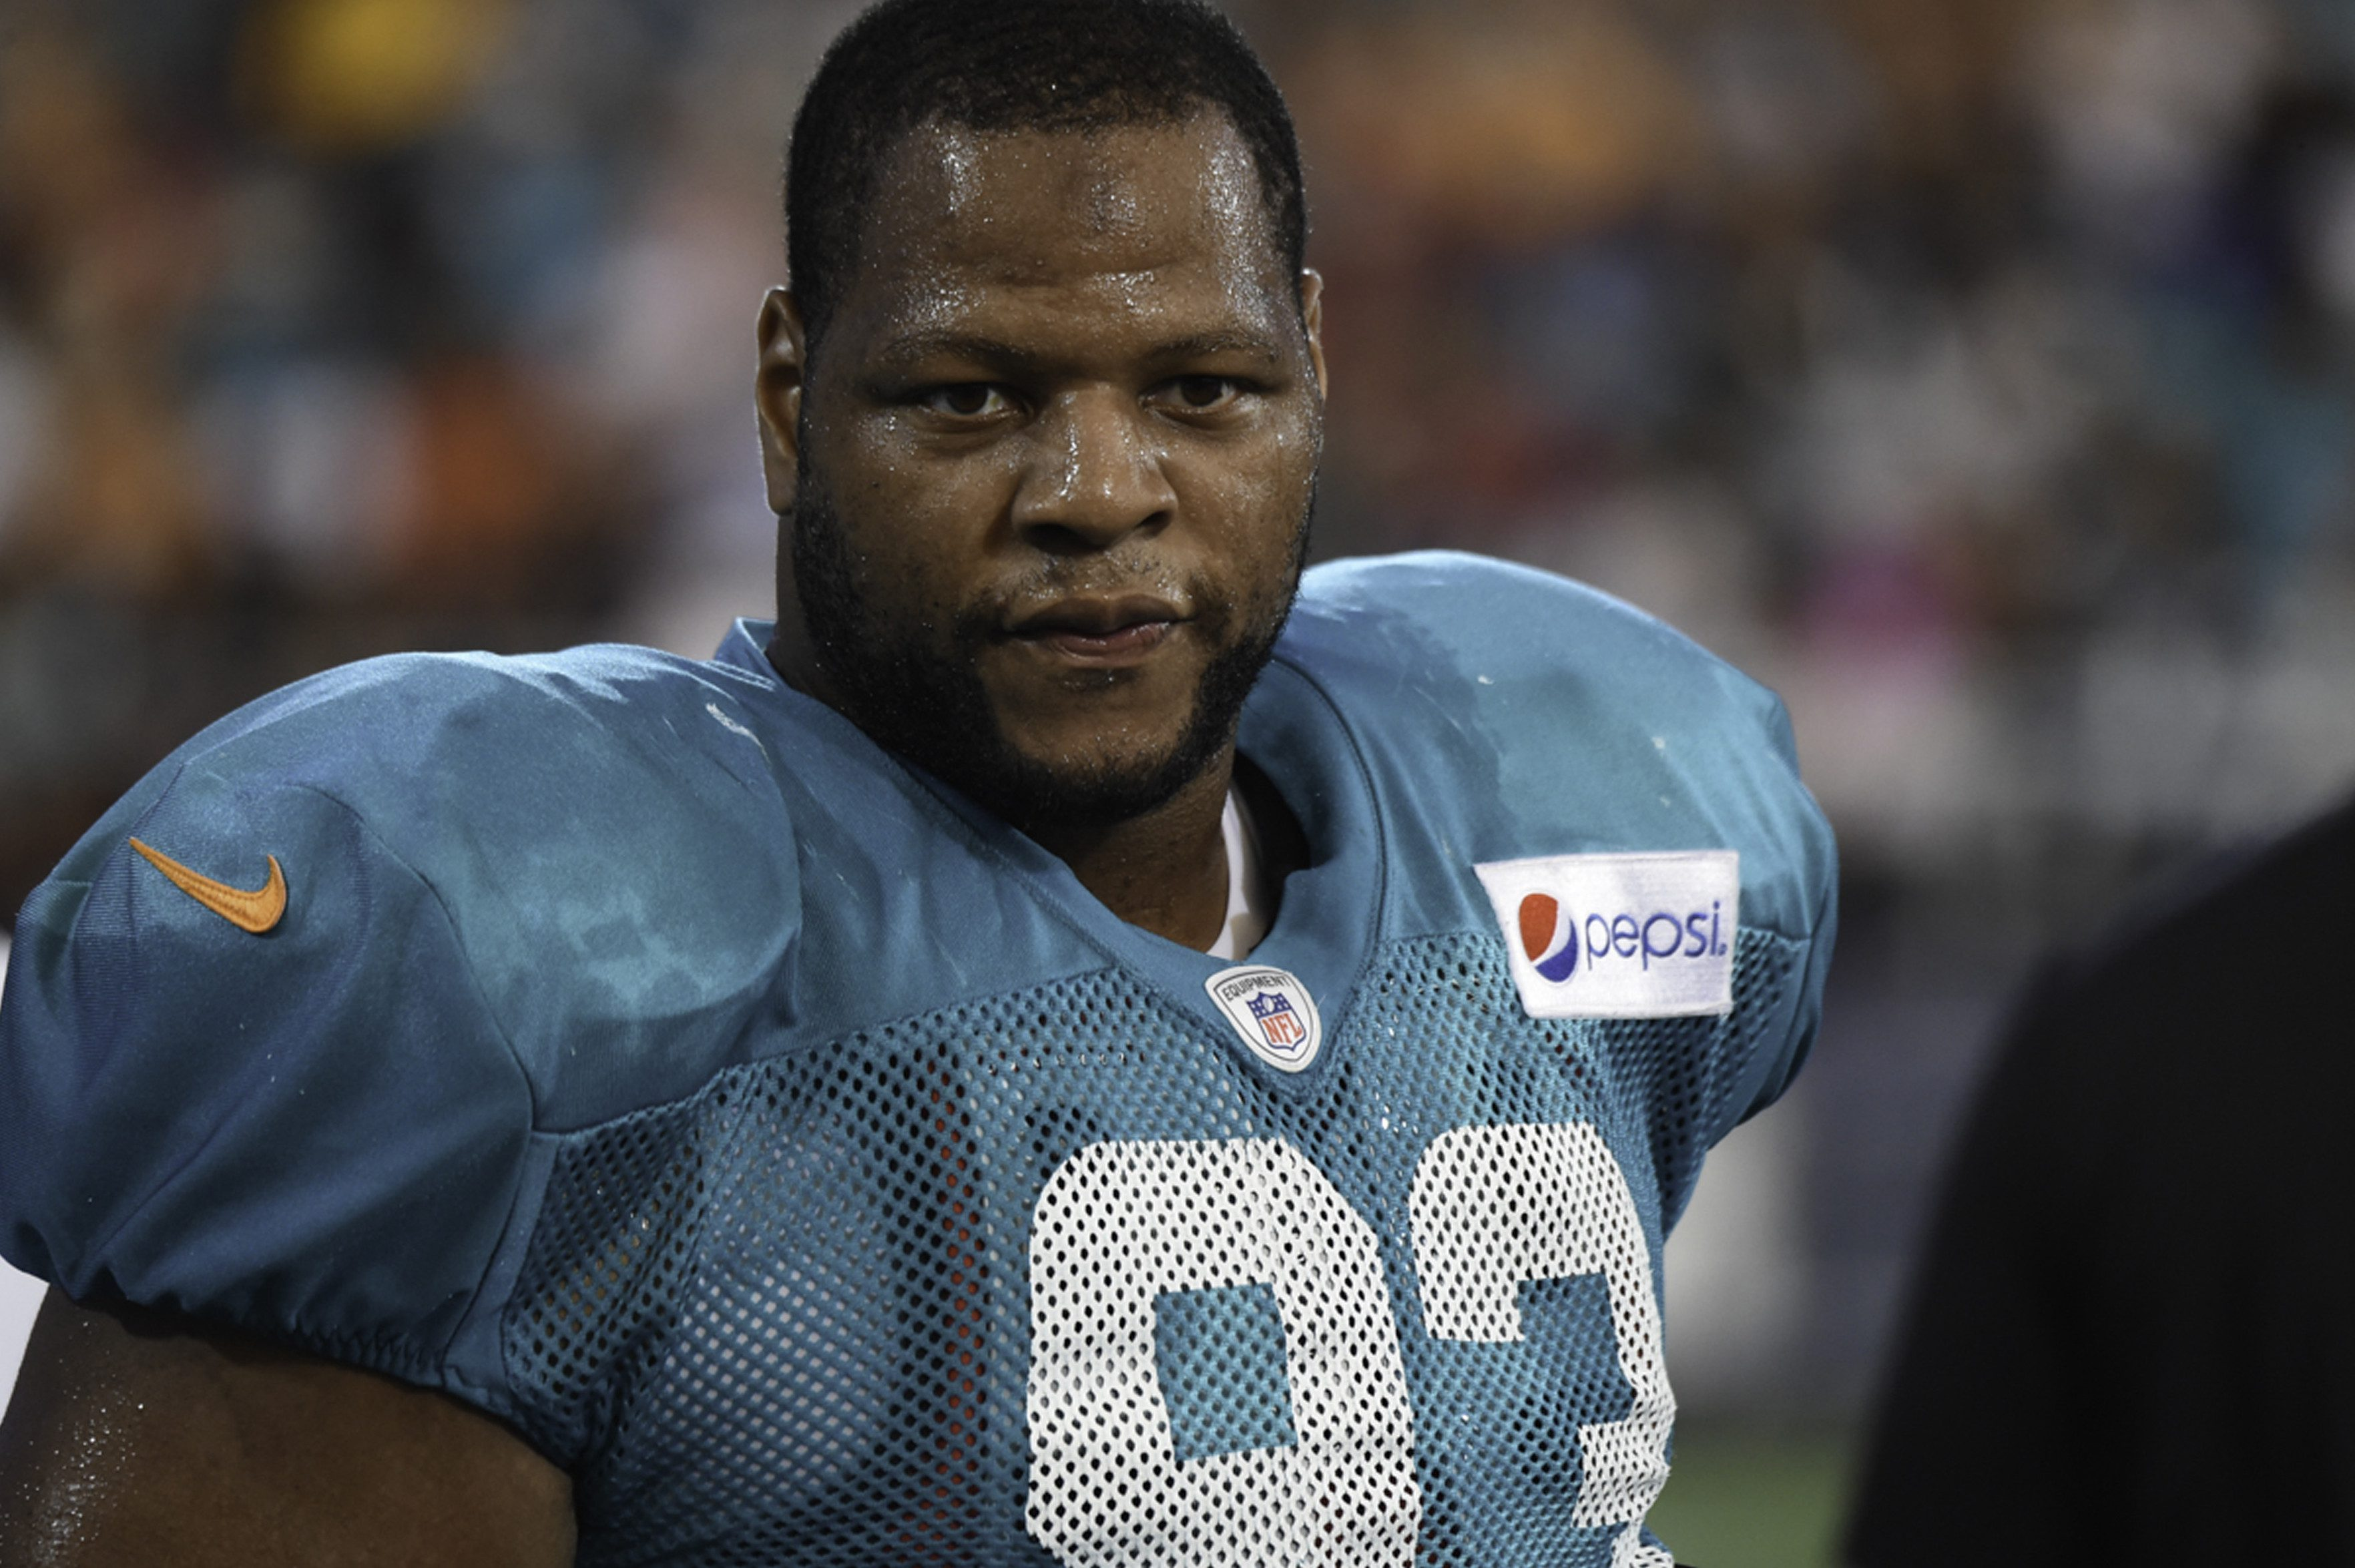 Is Ndamukong Suh The Most Delusional Player In The NFL